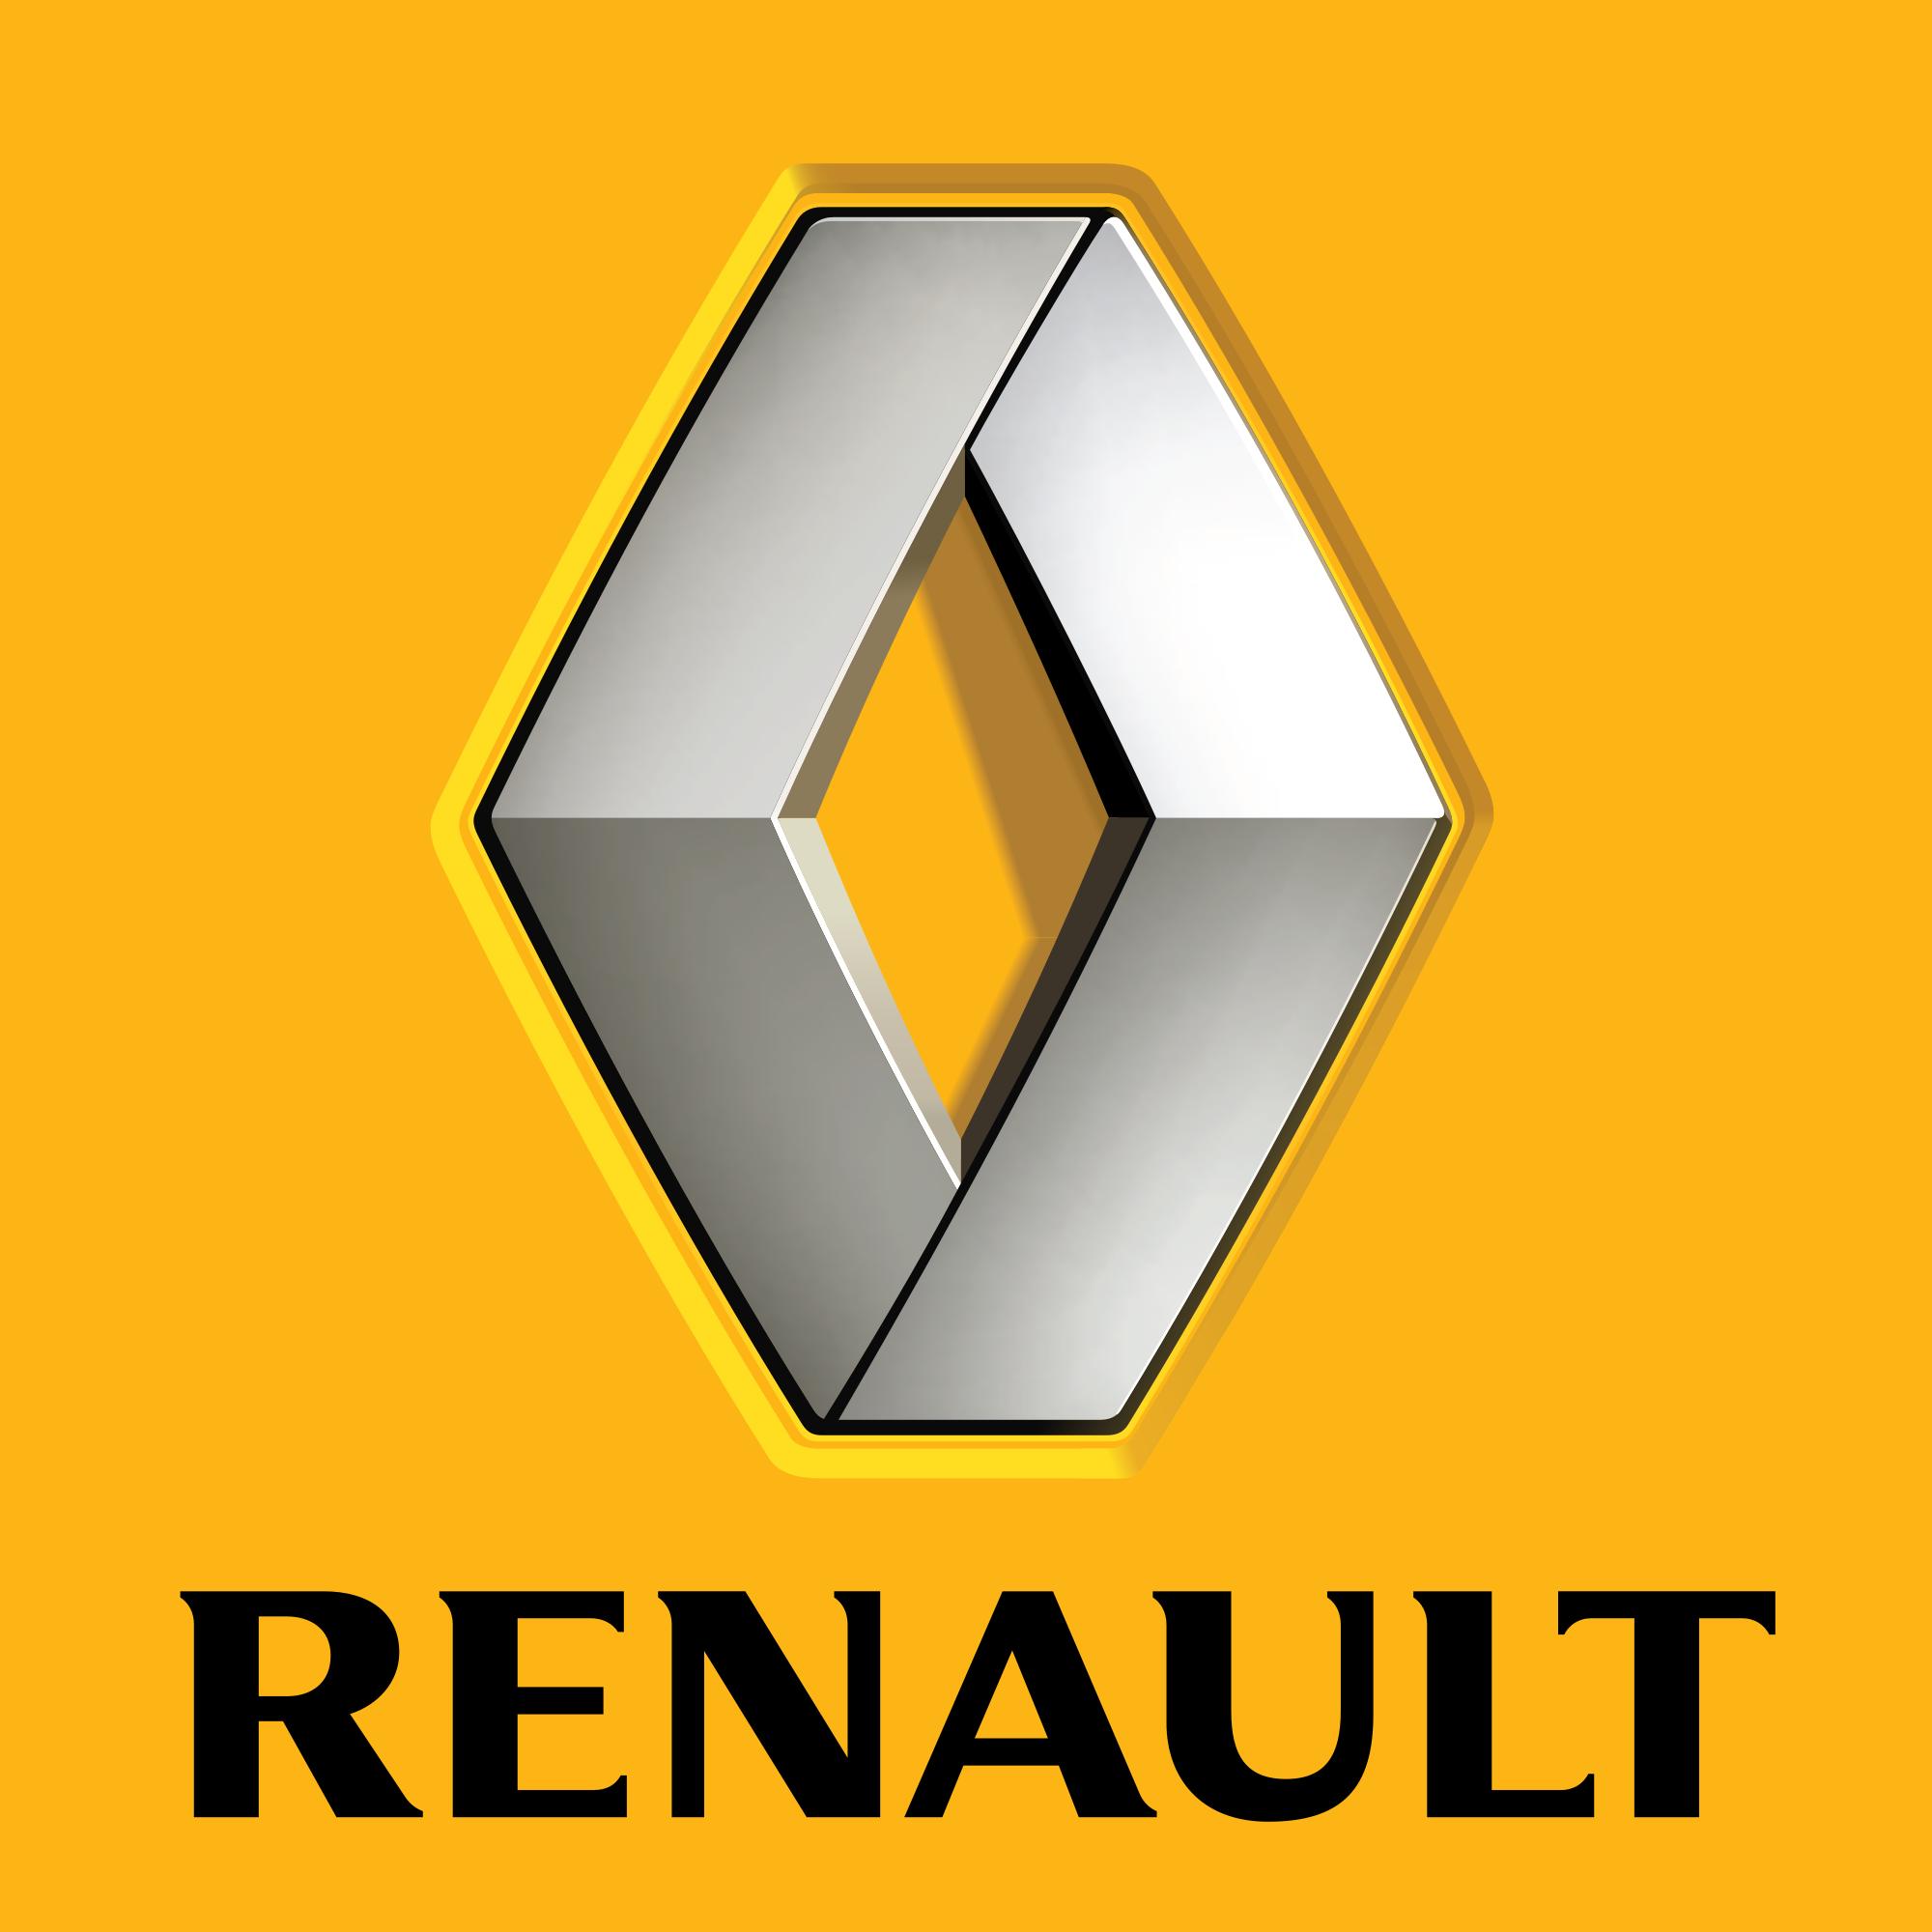 Helen Worked At The Renault Ofices Rickmansworth In Rickmansworth Hertfordshire Car Logos Car Brands Logos Renault